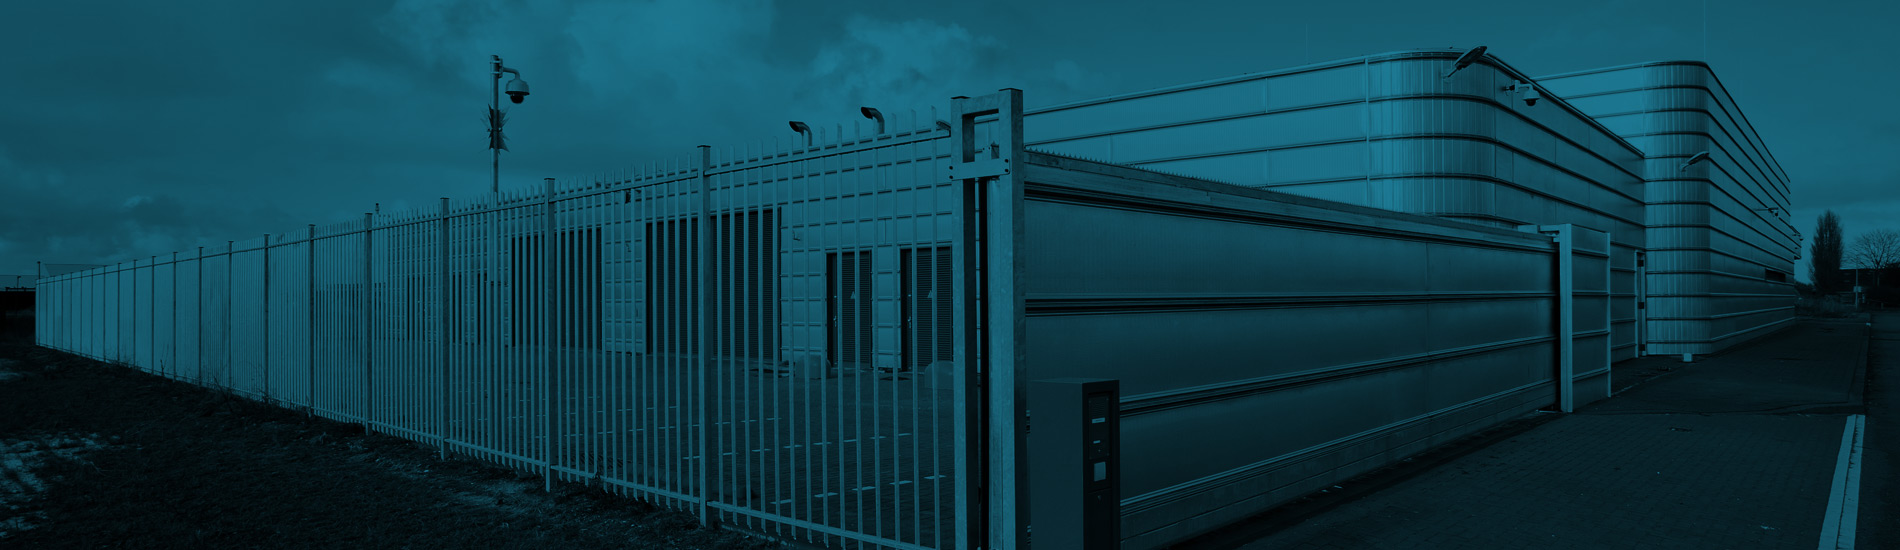 Teksec Fast Acting Bi-folding Speed Gate